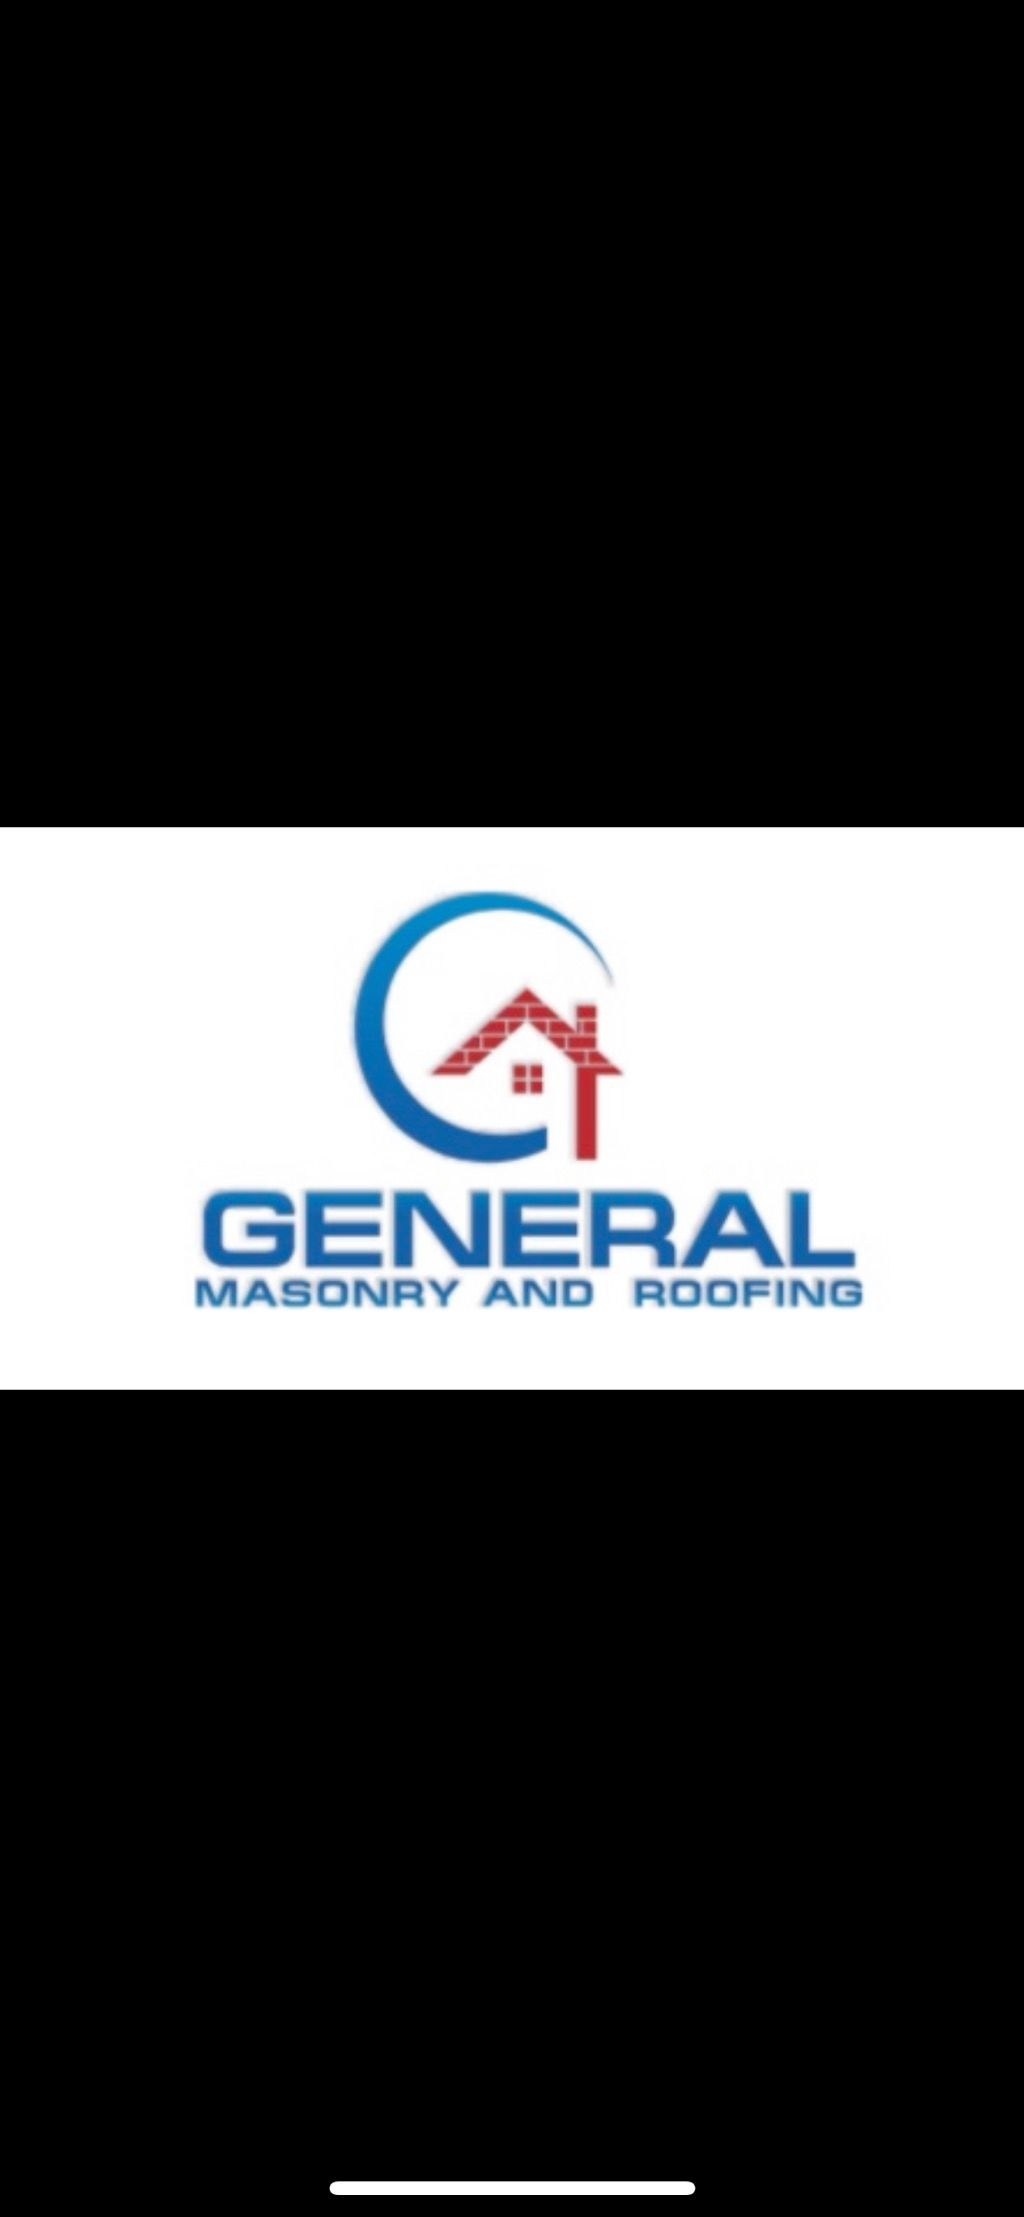 General Masonry And Roofing Llc Fairview Nj